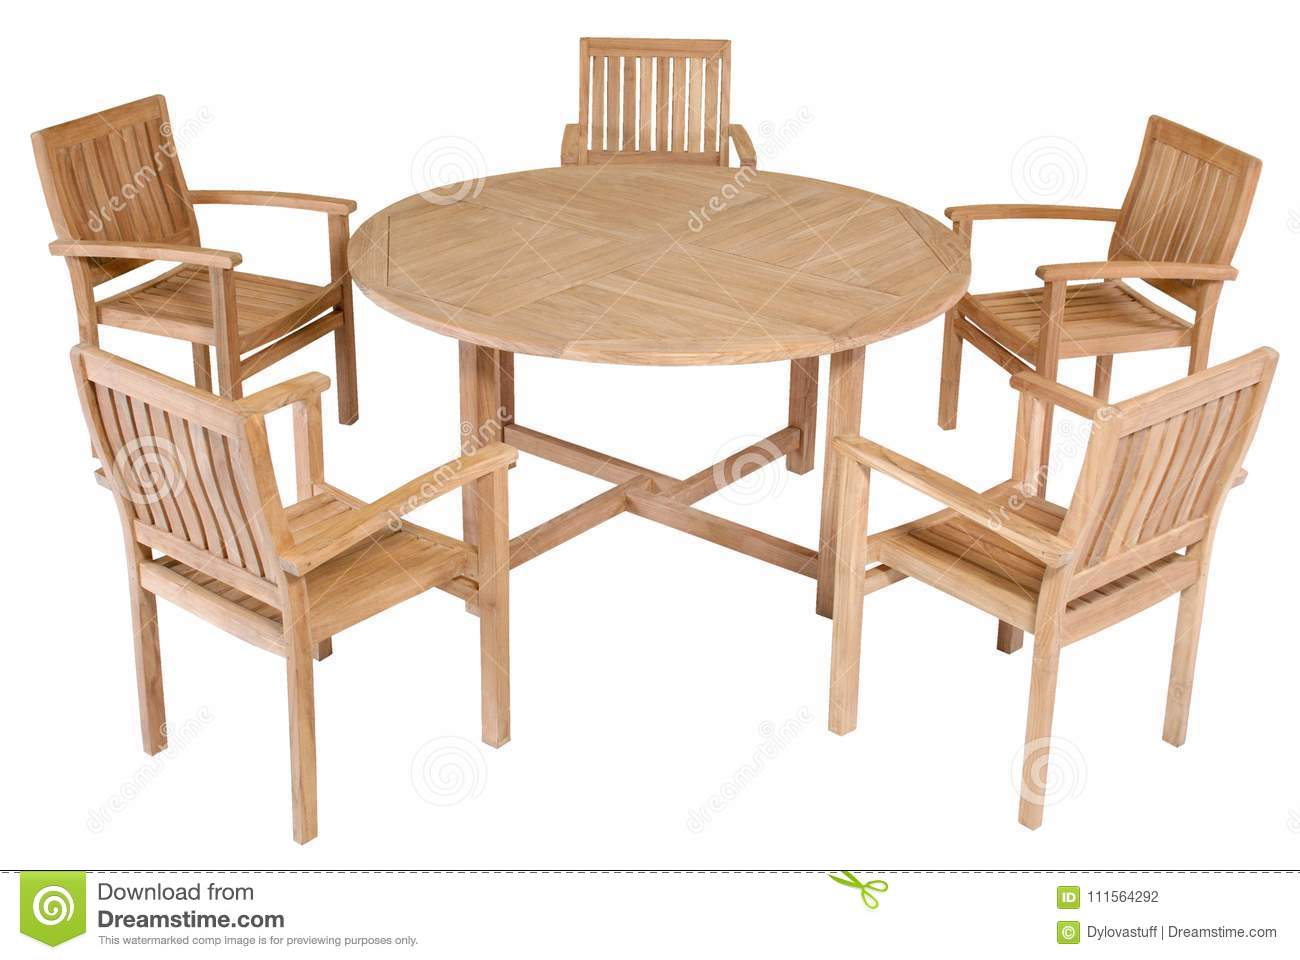 Astounding Chair With Round Table Teak Garden Furniture Garden Gmtry Best Dining Table And Chair Ideas Images Gmtryco